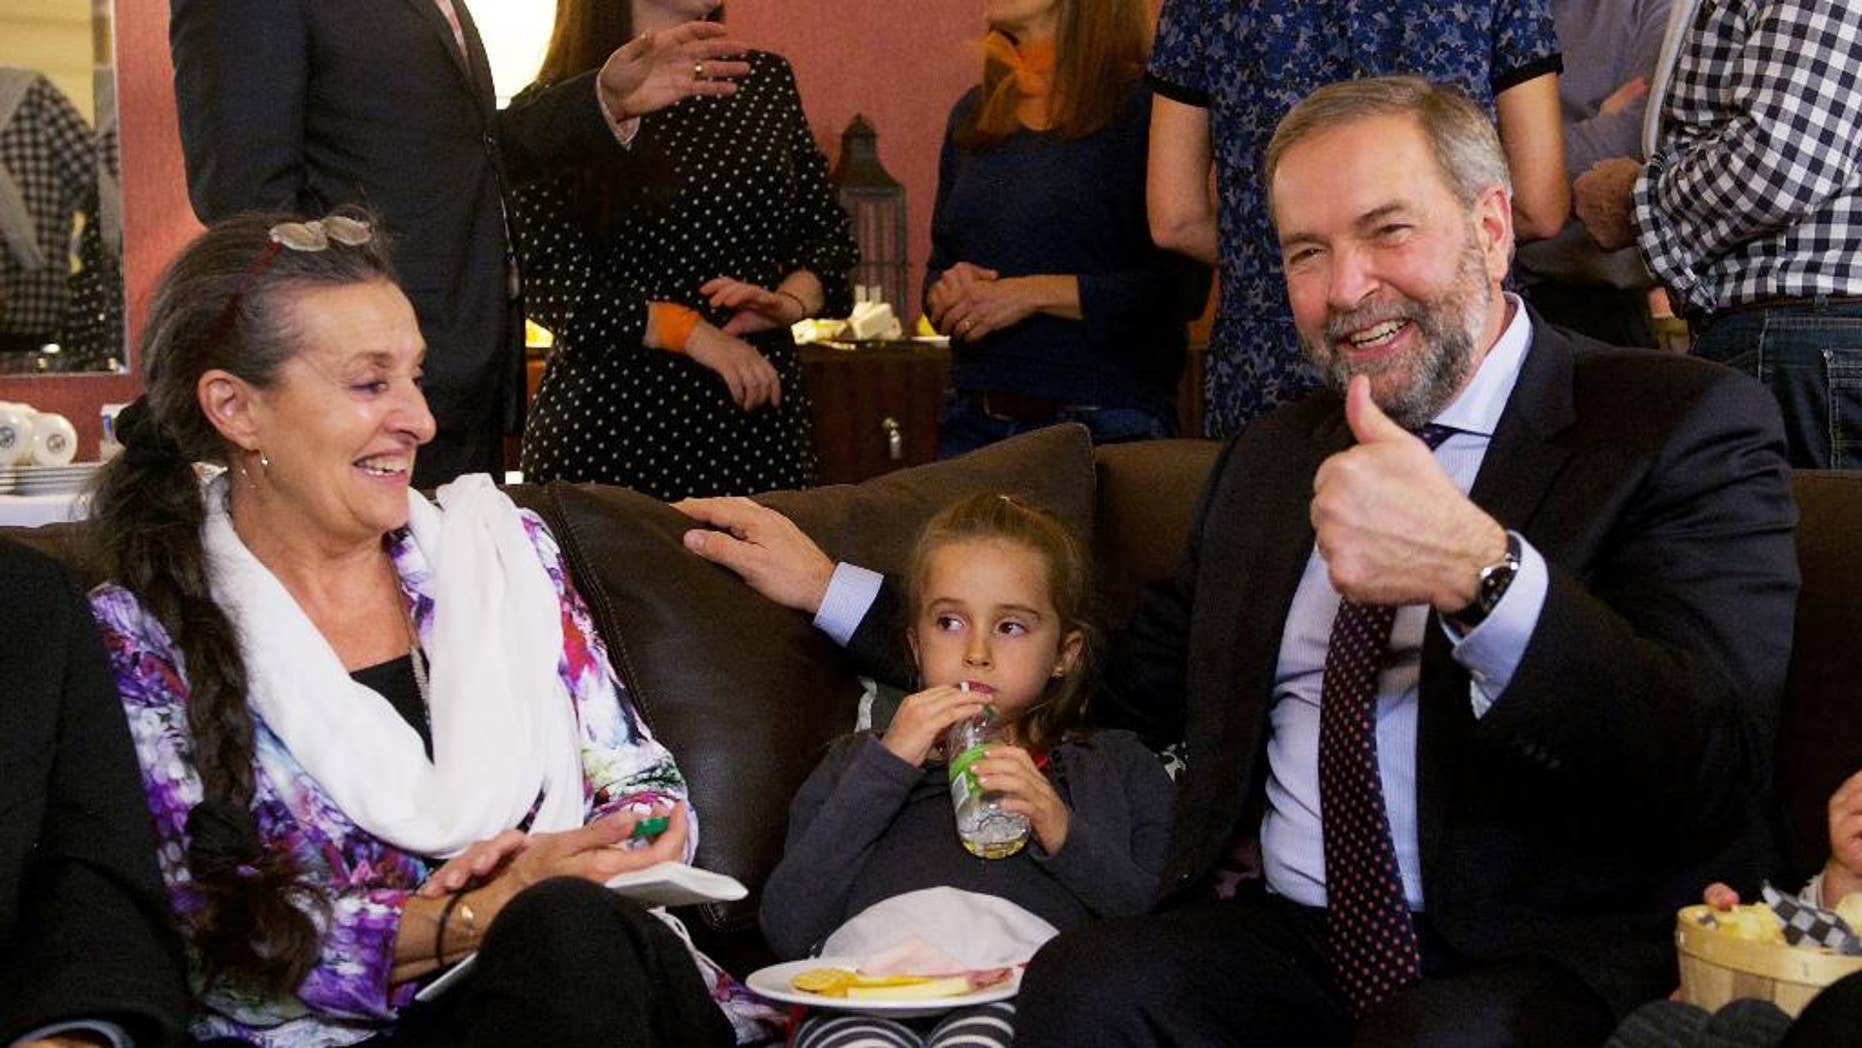 New Democratic Party Leader Tom Mulcair gestures as he watches the election results come in with his wife Catherine and granddaughter Juliette, Monday, Oct. 19, 2015, in Montreal. (Ryan Remiorz/The Canadian Press via AP) MANDATORY CREDIT